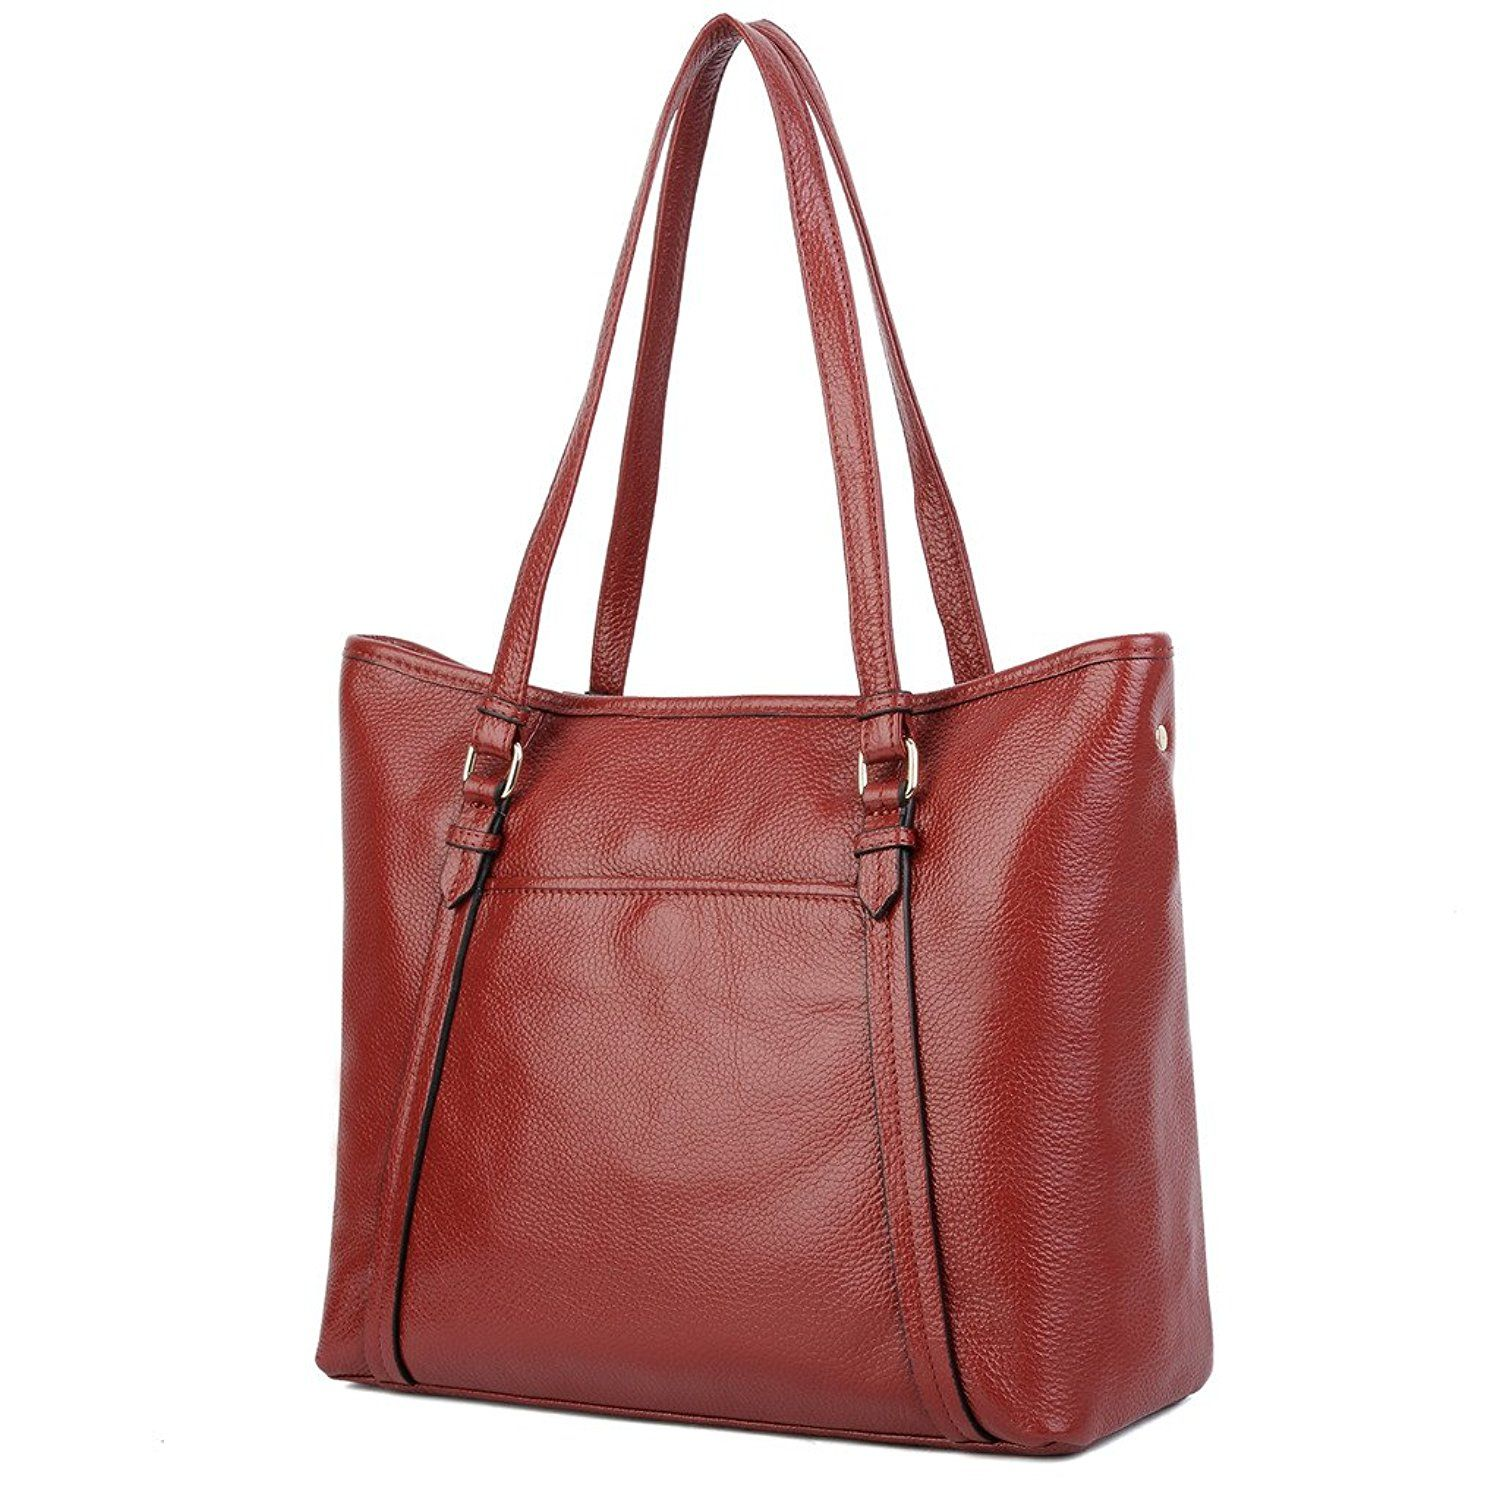 1933614b0b YALUXE Women s Soft Leather Cowhide Leather Tote Shoulder Bag ...